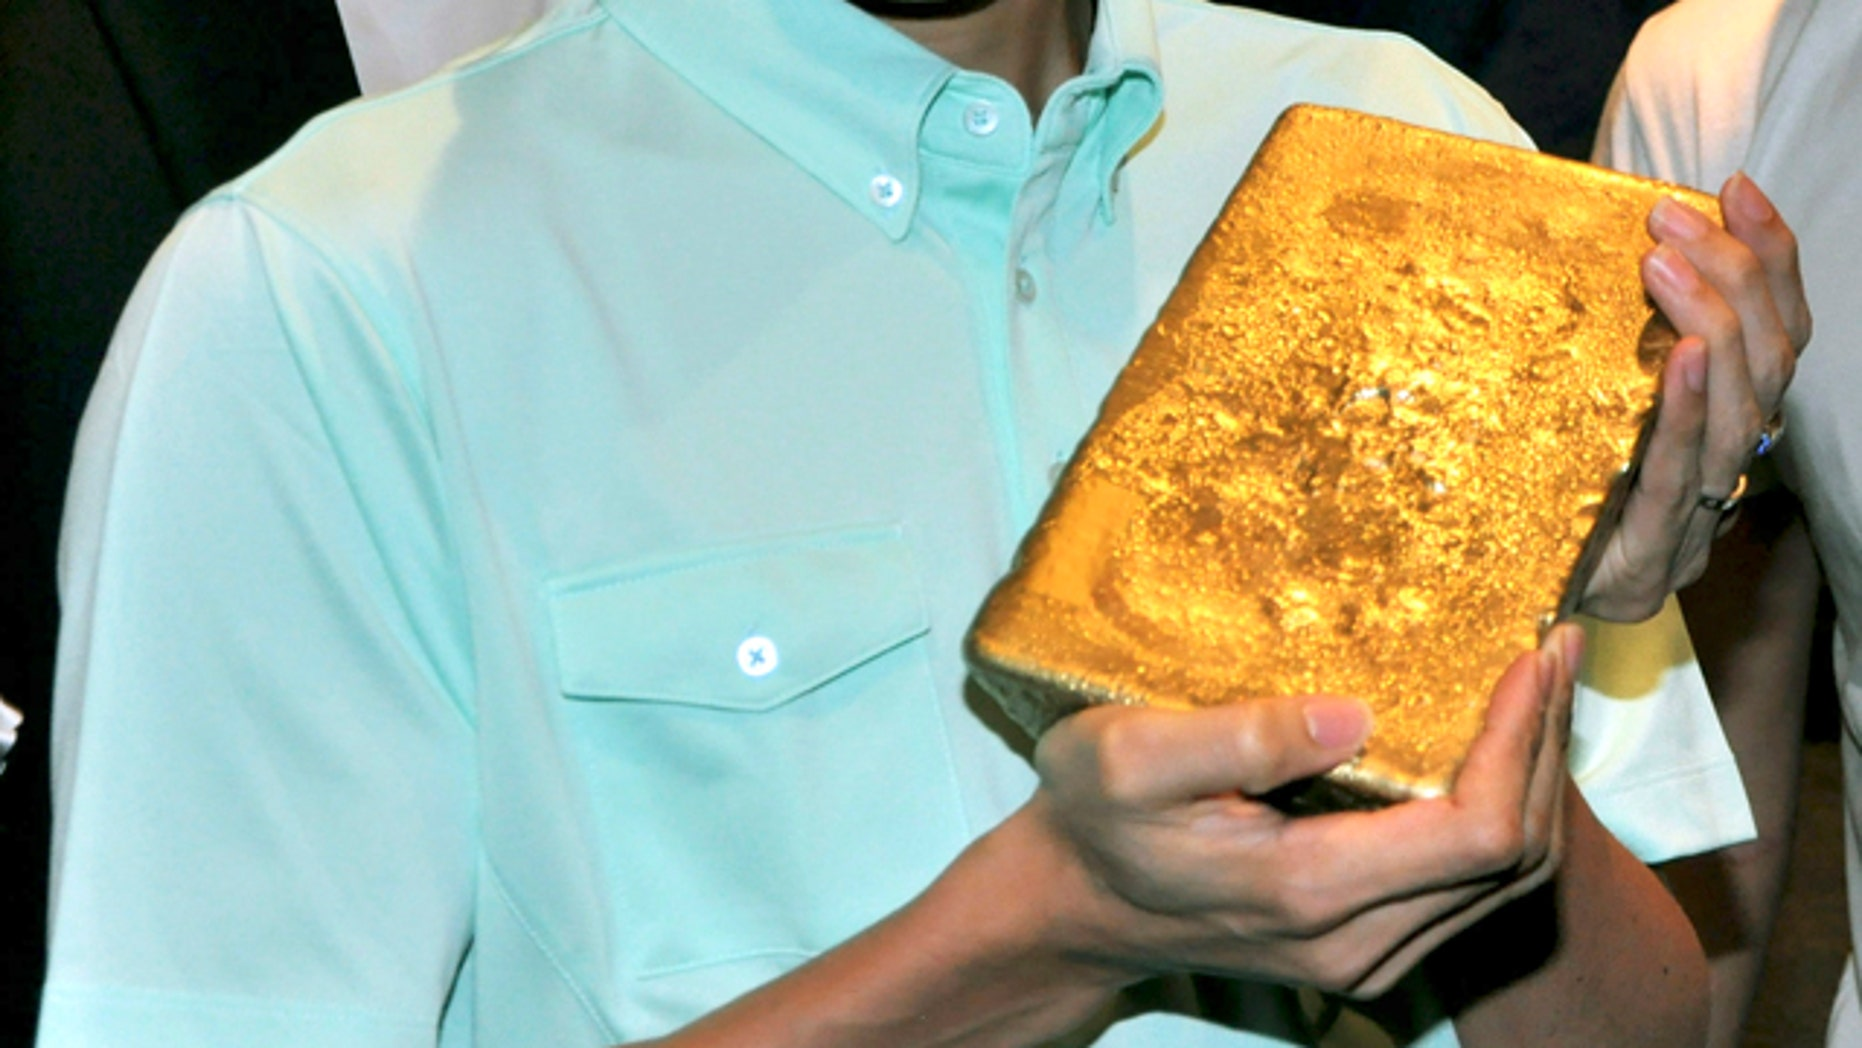 July 10, 2012: In this photo, Malaysian Olympic badminton player Lee Chong Wei holds a gold bar worth $627,795 during an incentive announcement for Olympic bound badminton players in Kuala Lumpur, Malaysia.